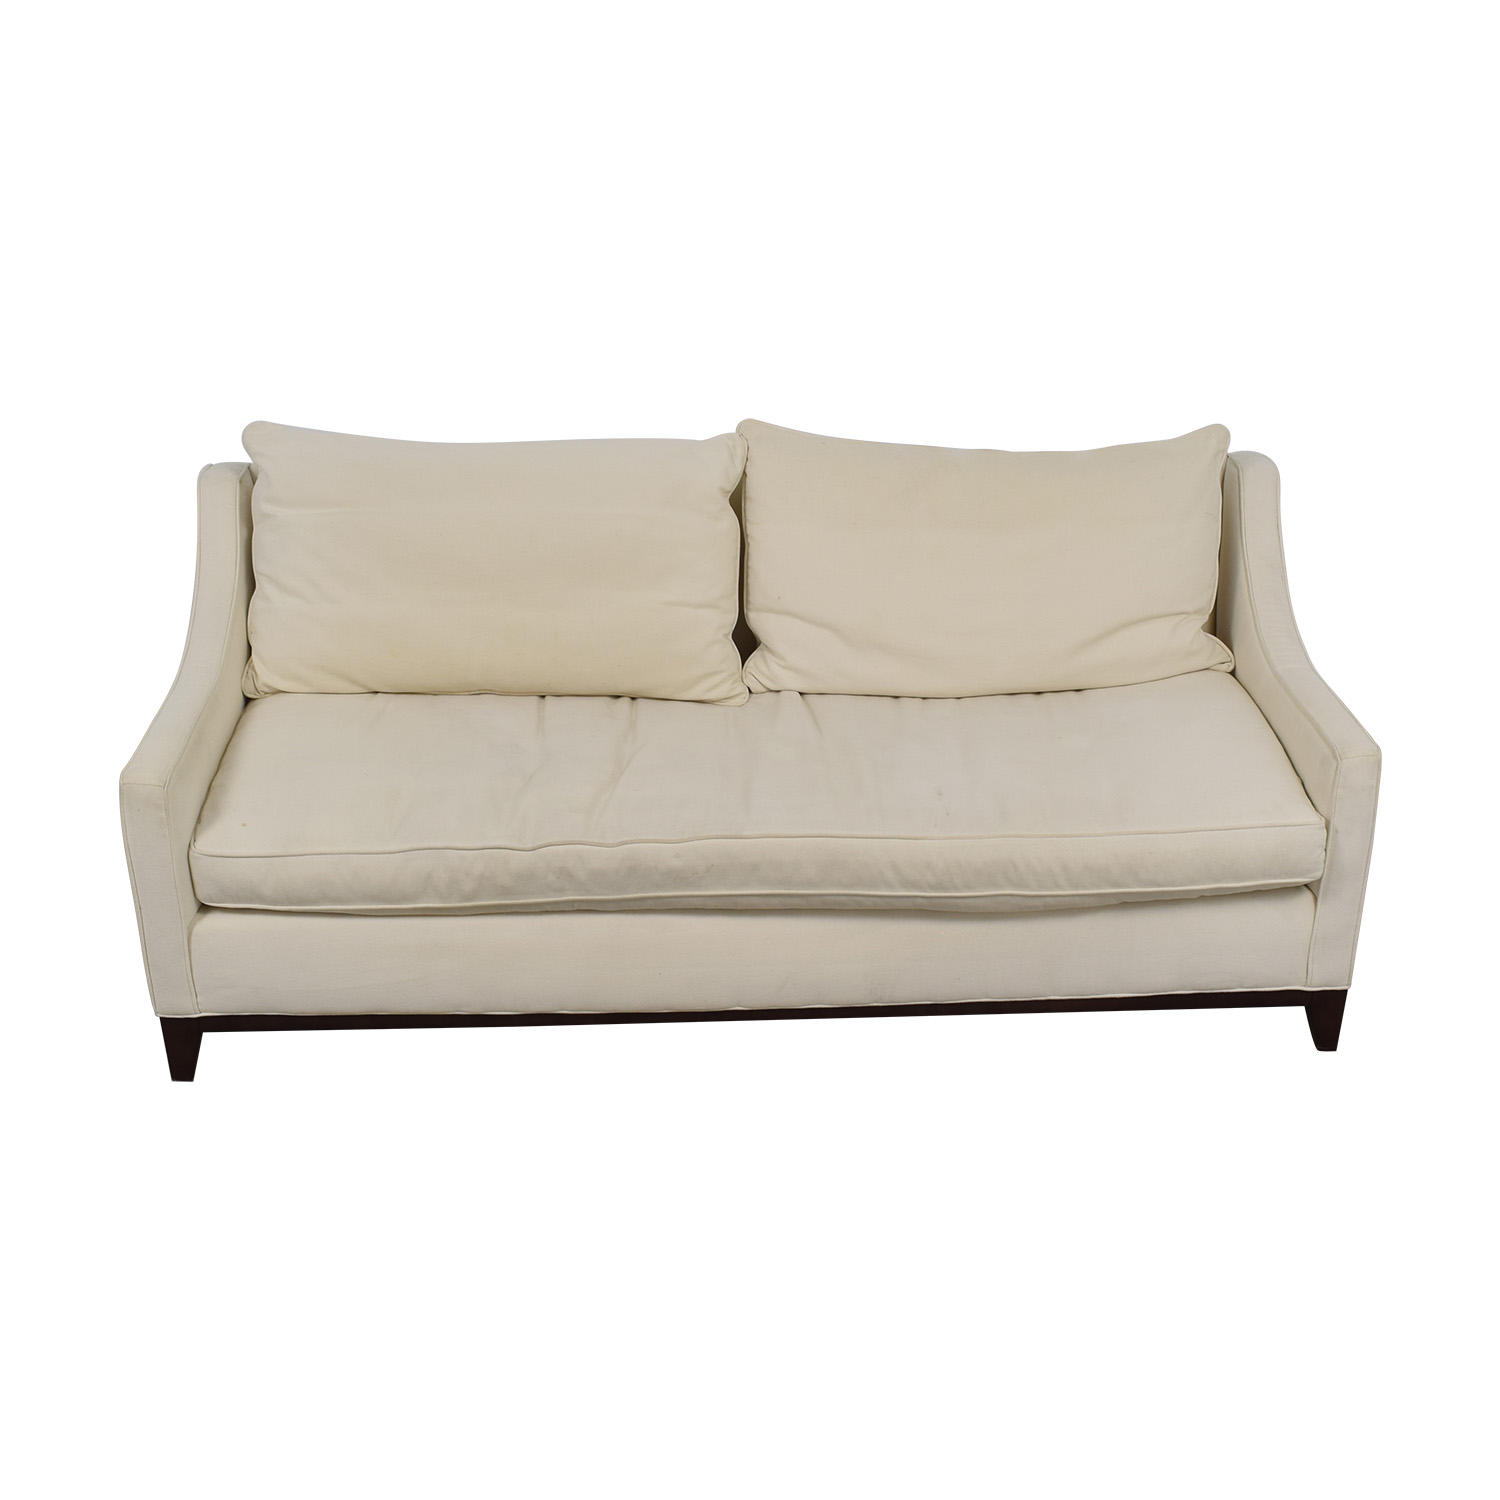 shop Williams Sonoma Presidio White Single Cushion Sofa Williams Sonoma